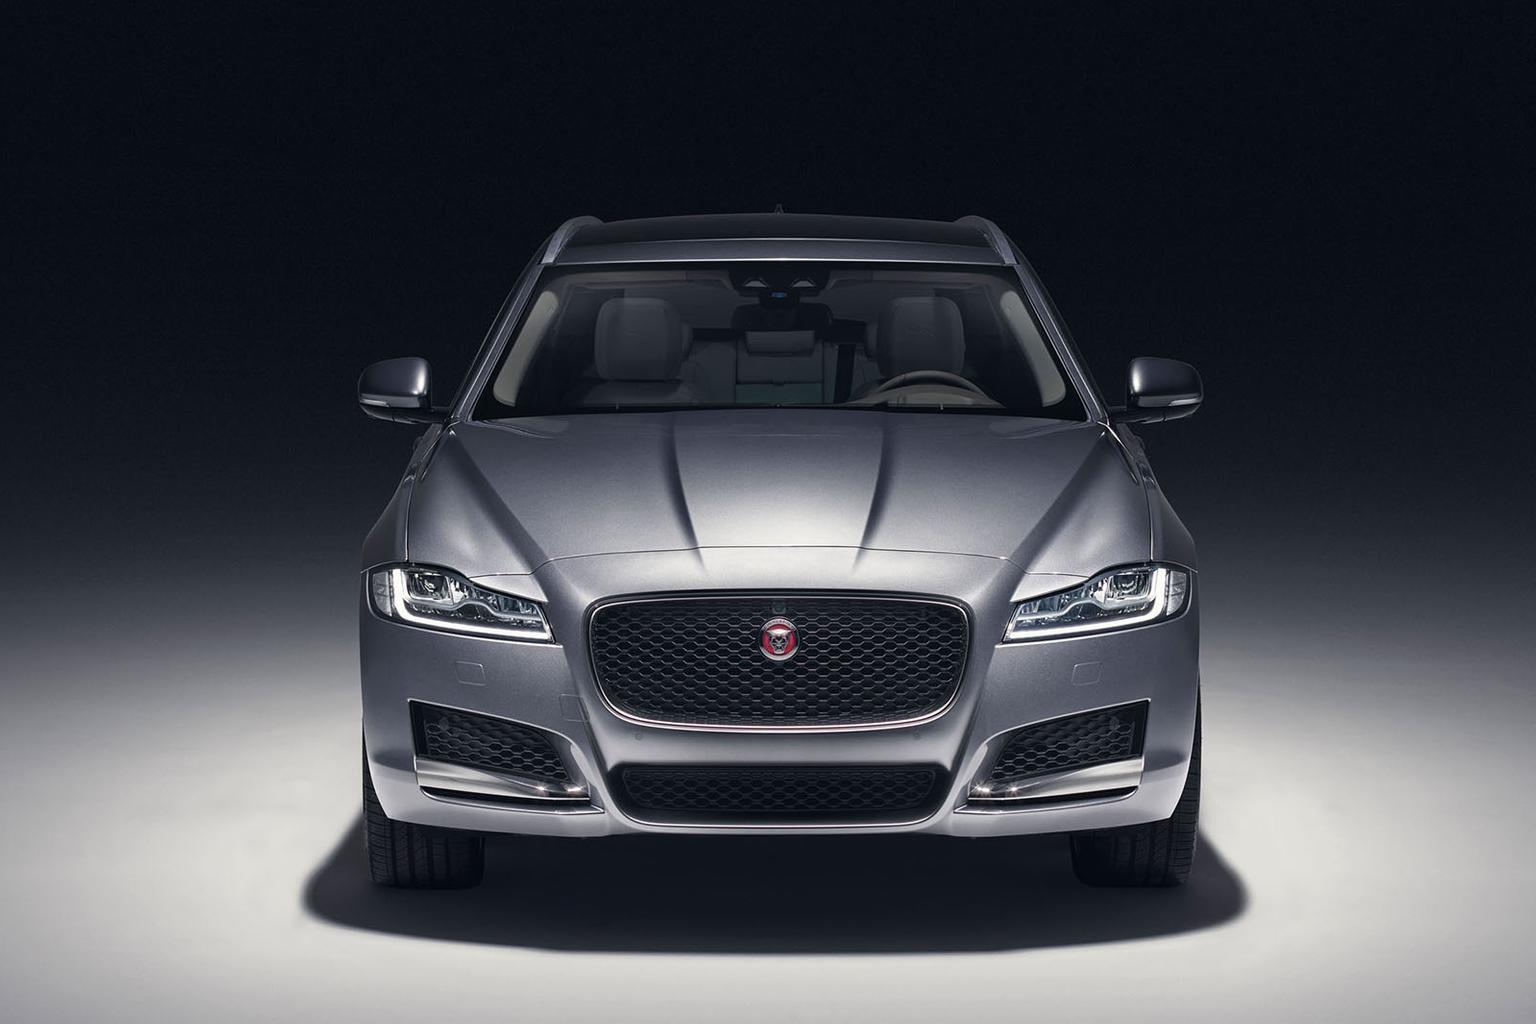 New Jaguar XF Sportbrake in pictures